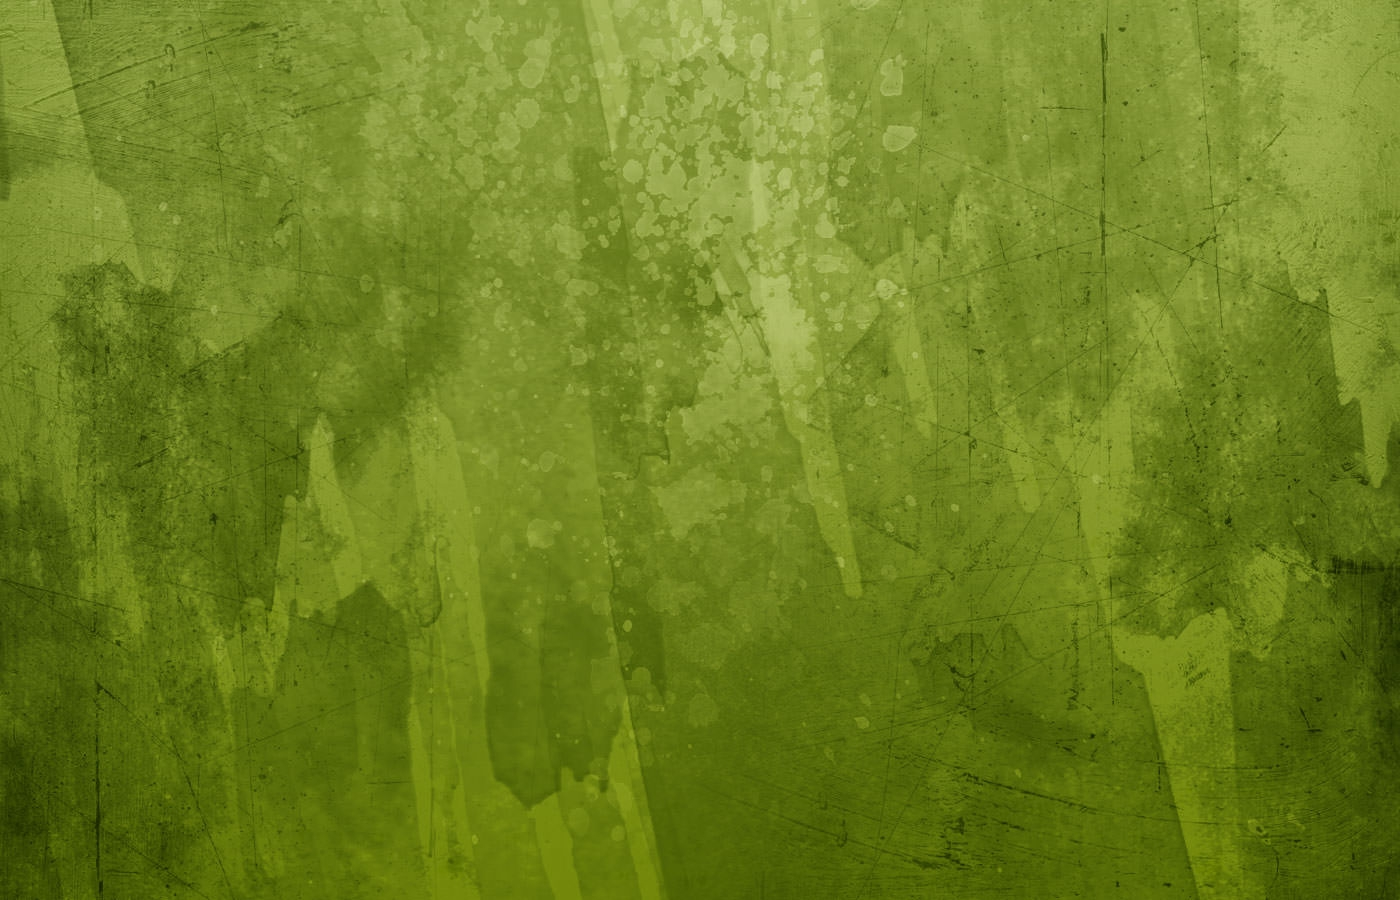 Fantastic Wallpaper Halloween Grunge - Watercolor-Green-Grunge-Wallpaper  You Should Have_444064.jpg